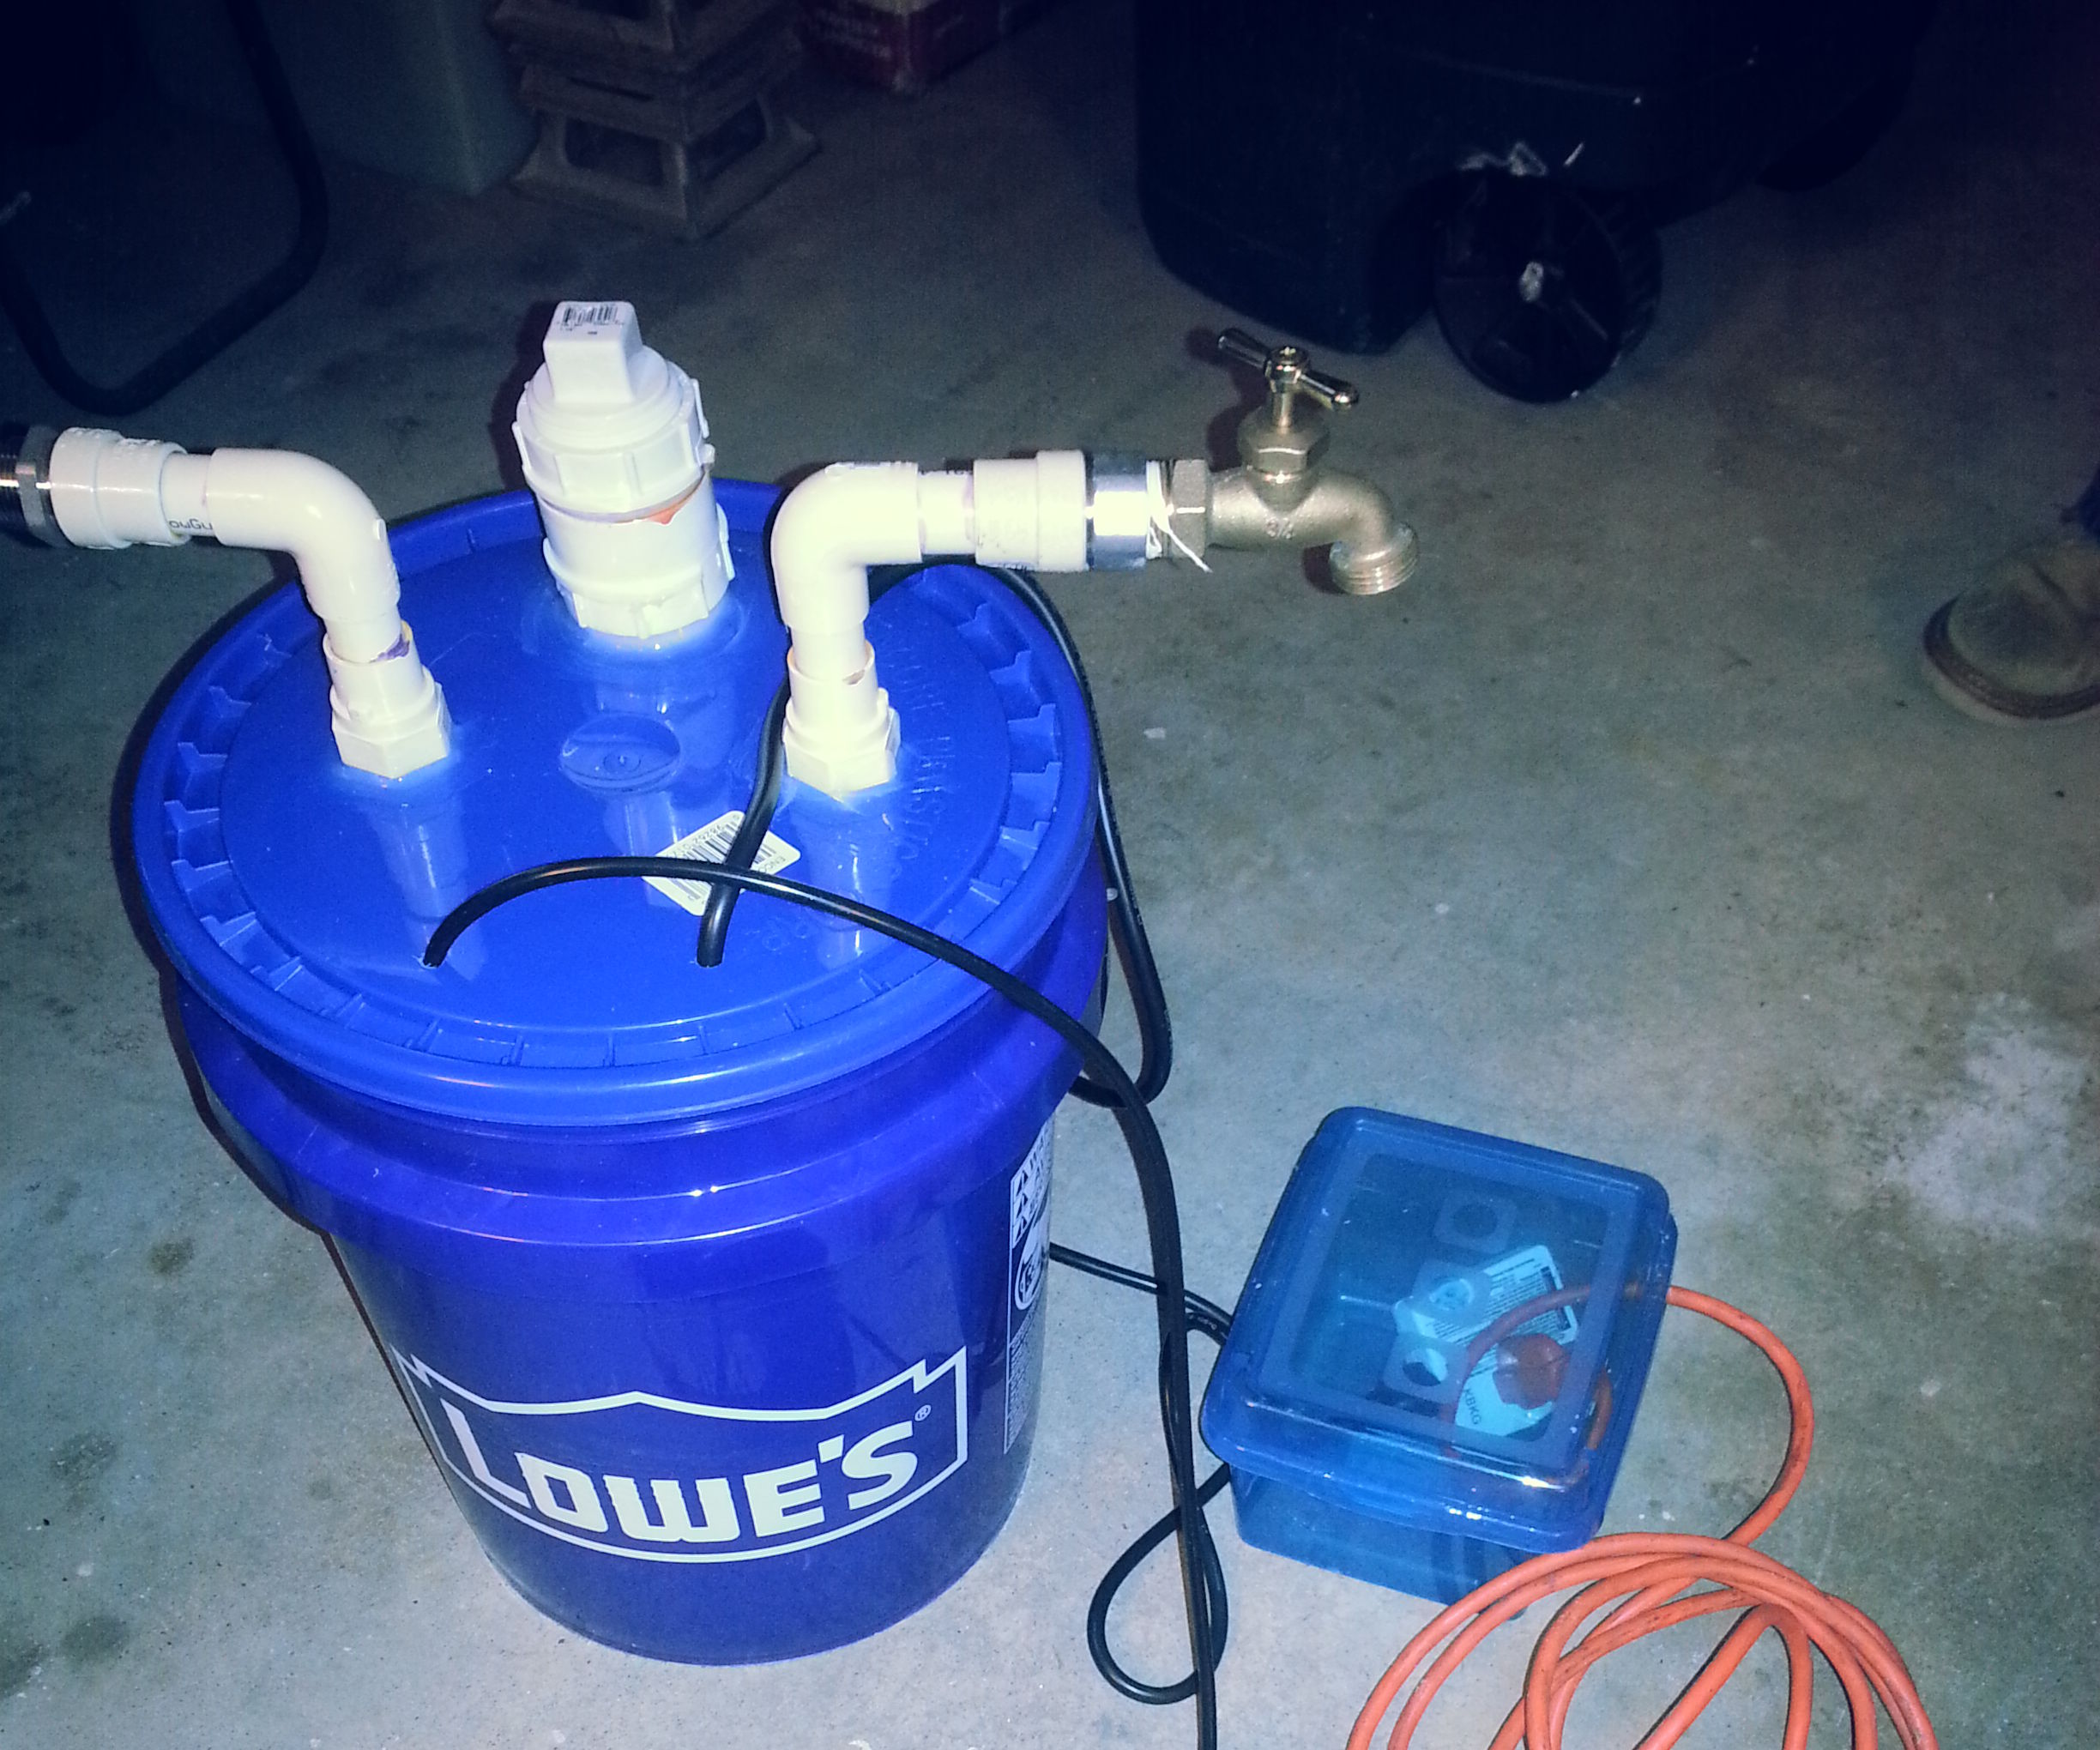 Awesomely Automatic Garden Watering Buddy - Complete with Reservoir for Nutrients.